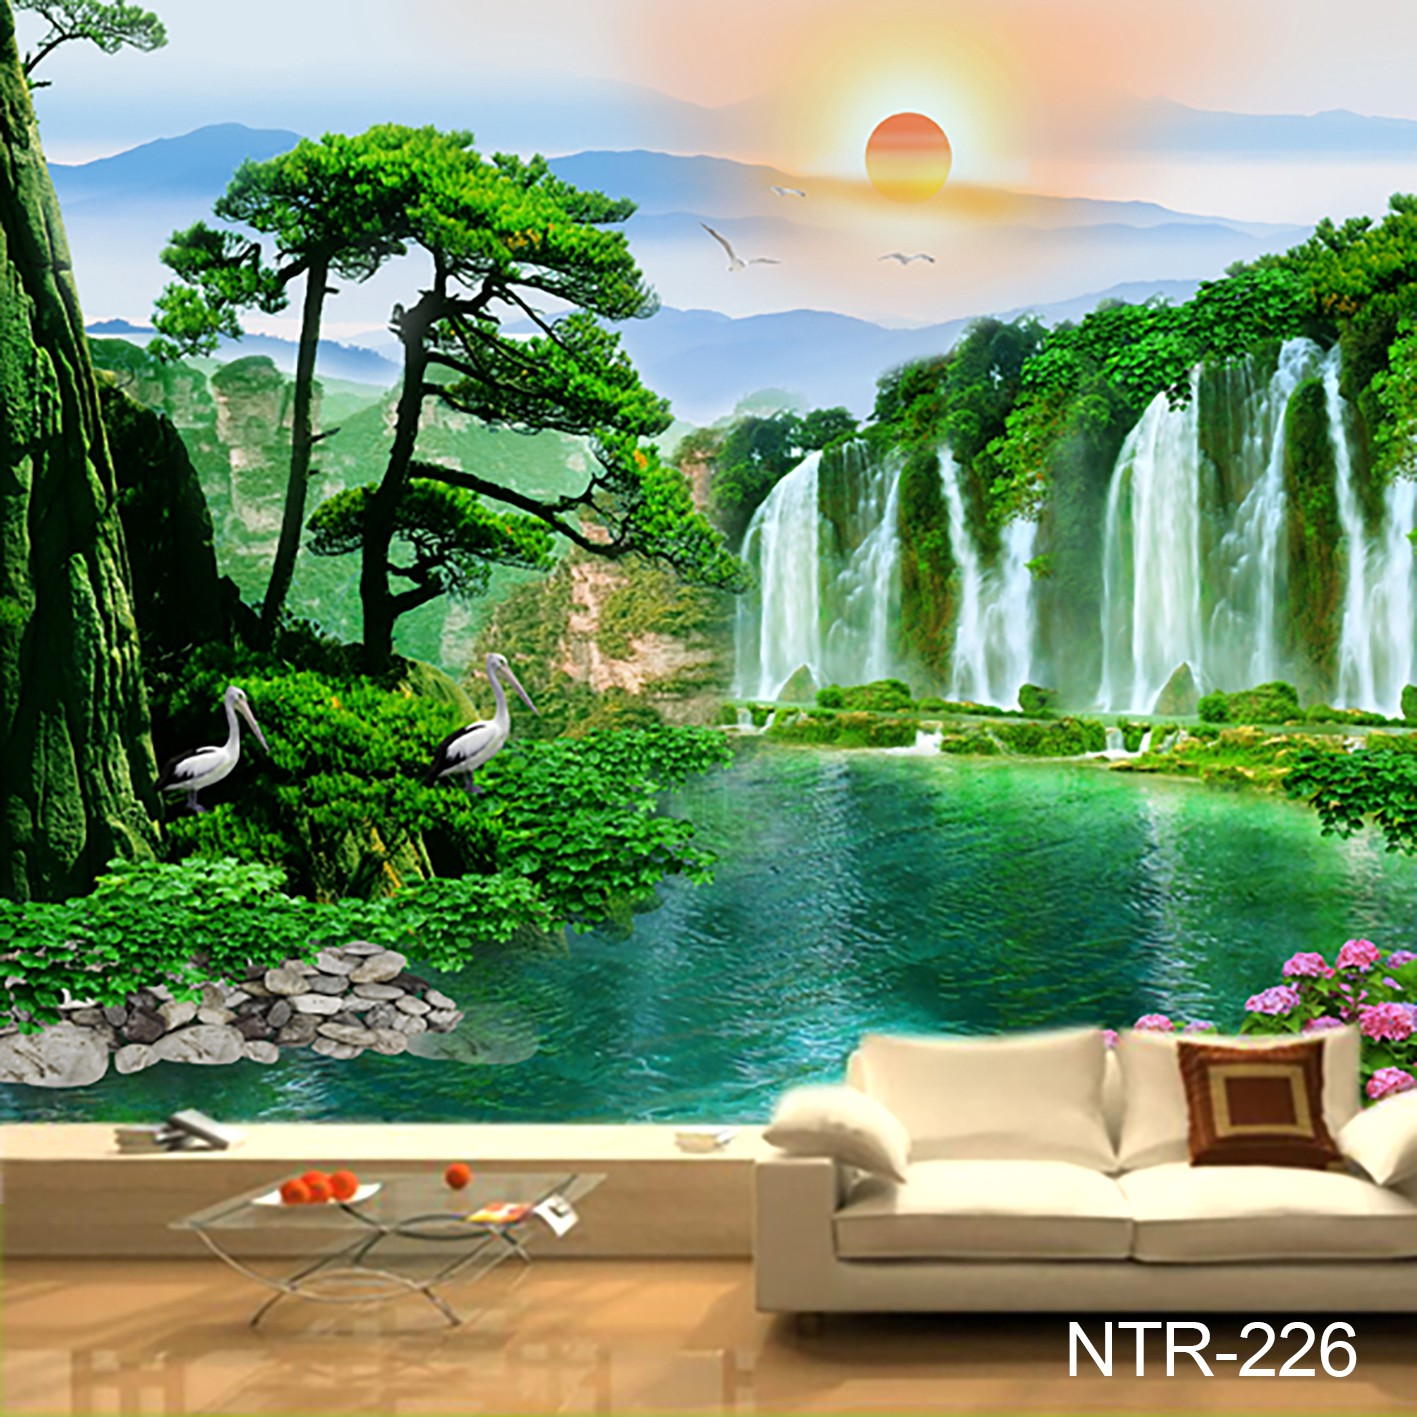 WALLPAPER DINDING CUSTOM 3D Wallpaper Jakarta Medium